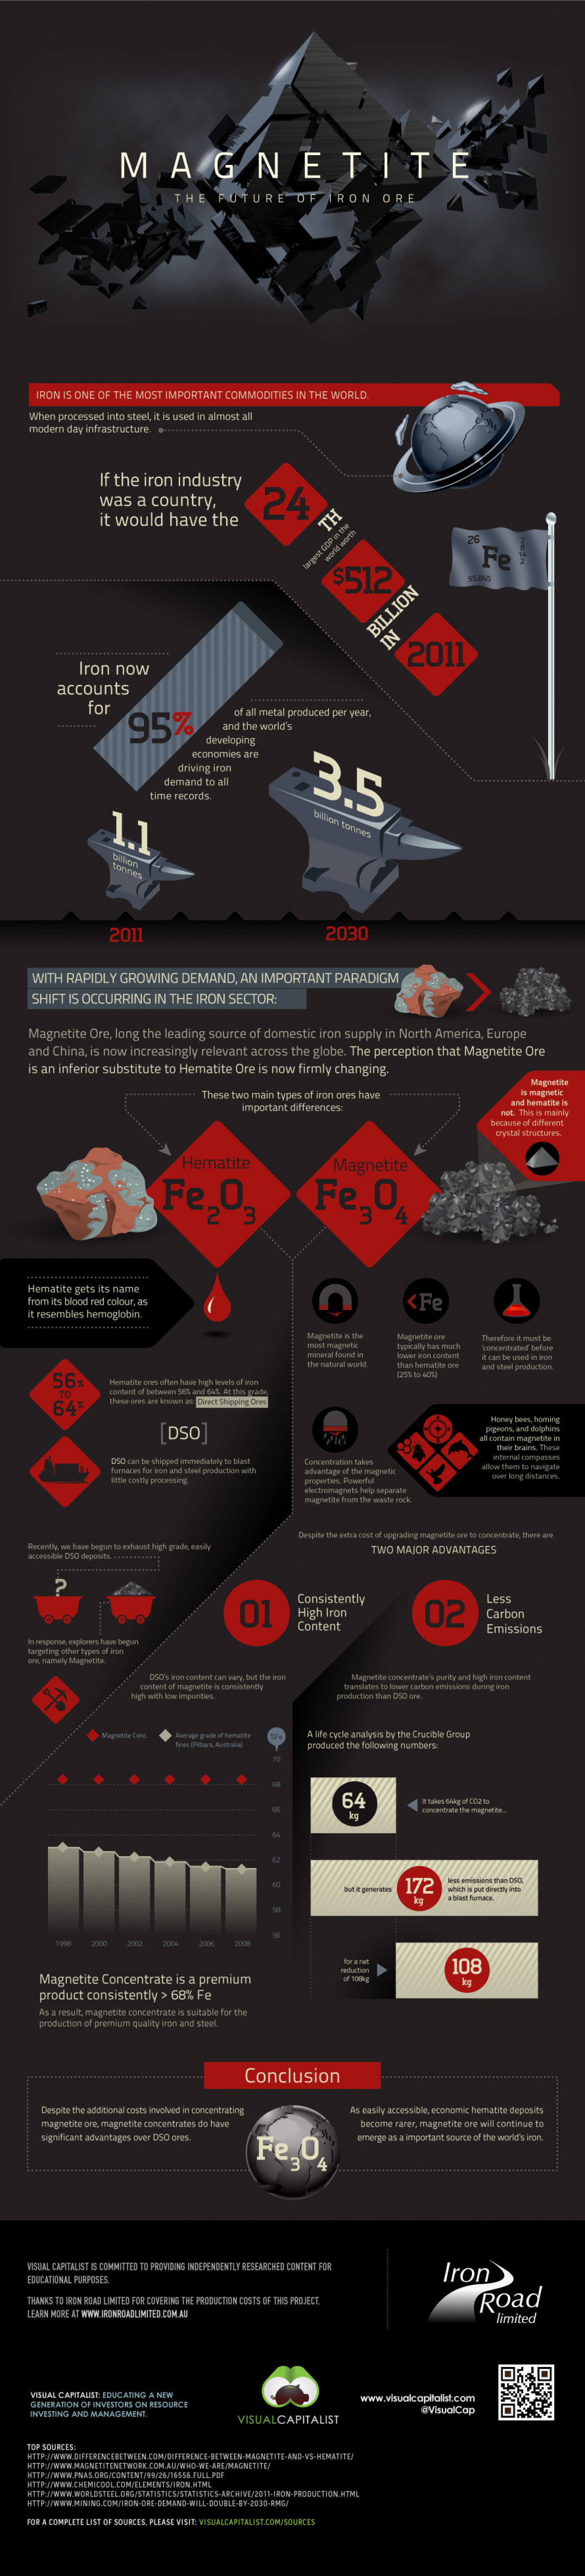 Magnetite: The Future of Iron Ore Infographic